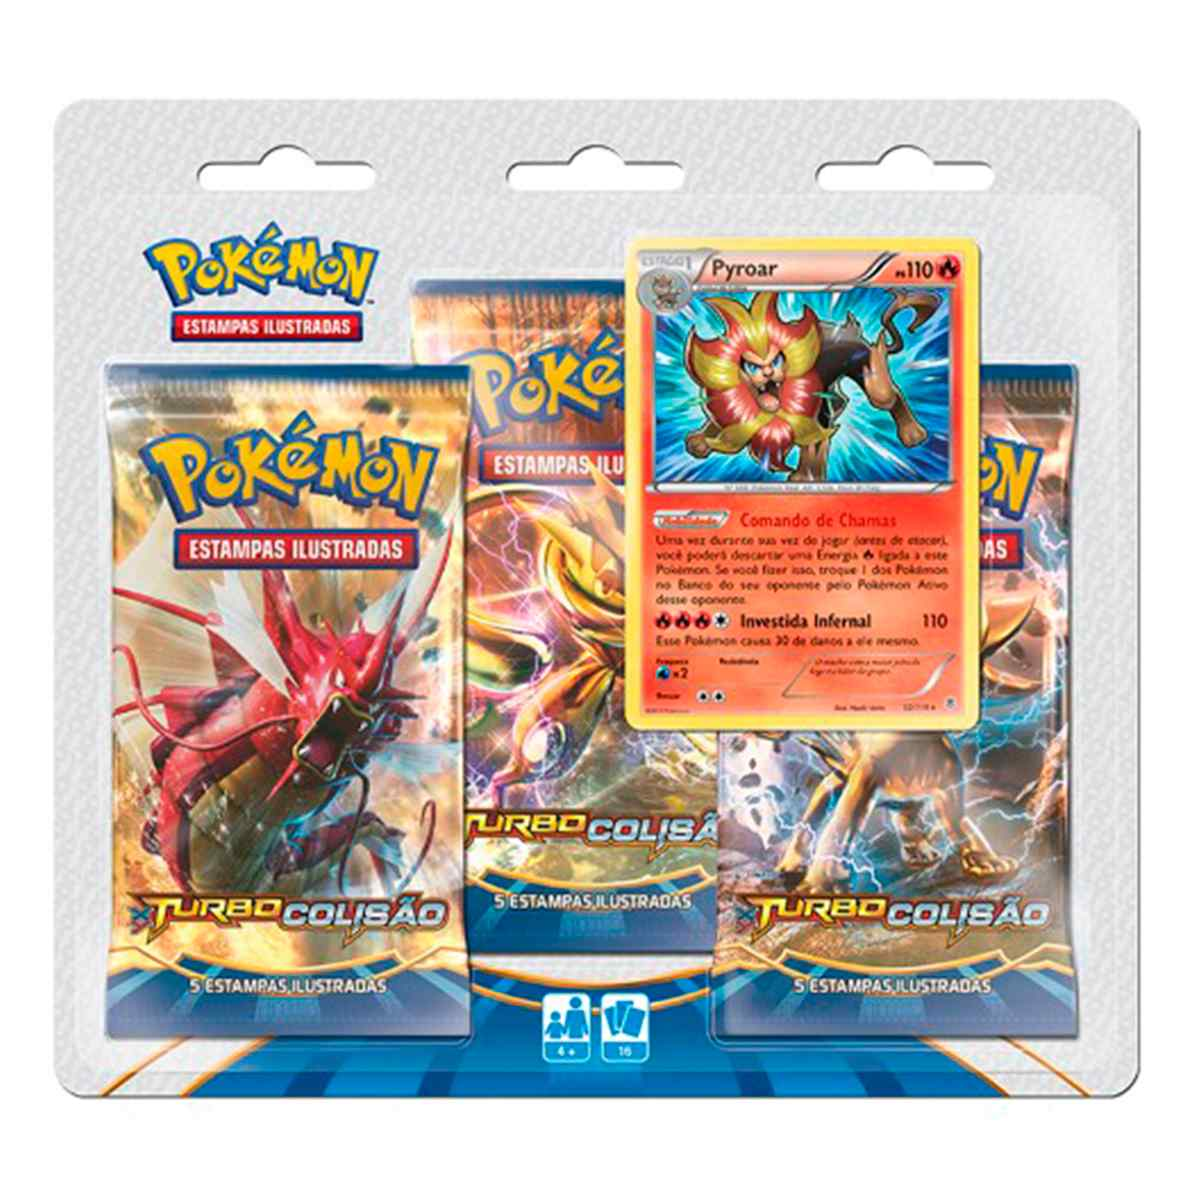 Pokémon Triple Pack Pyroar XY 9 Turbo Colisão